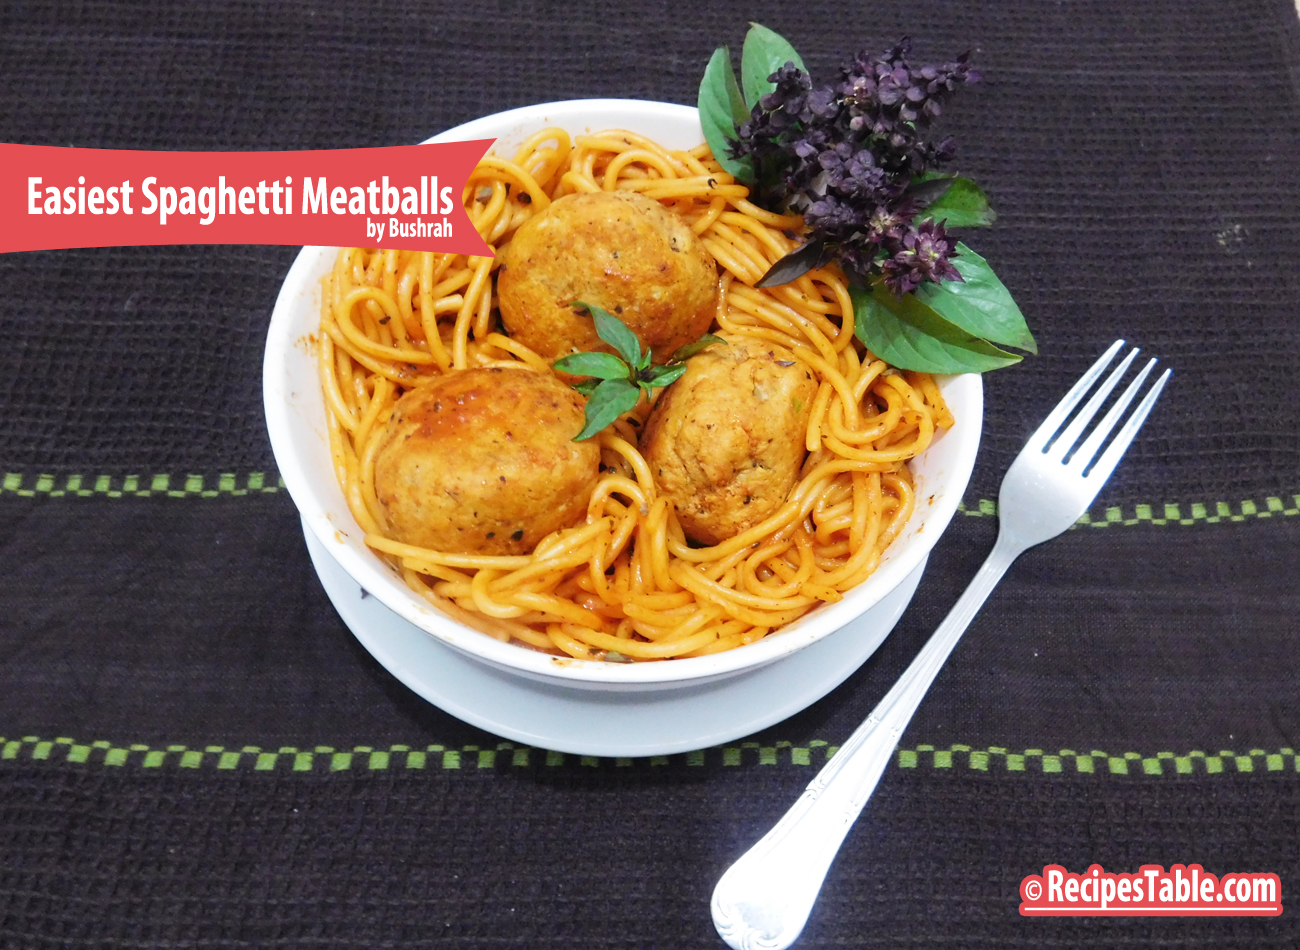 The Best Easiest Spaghetti Meatballs